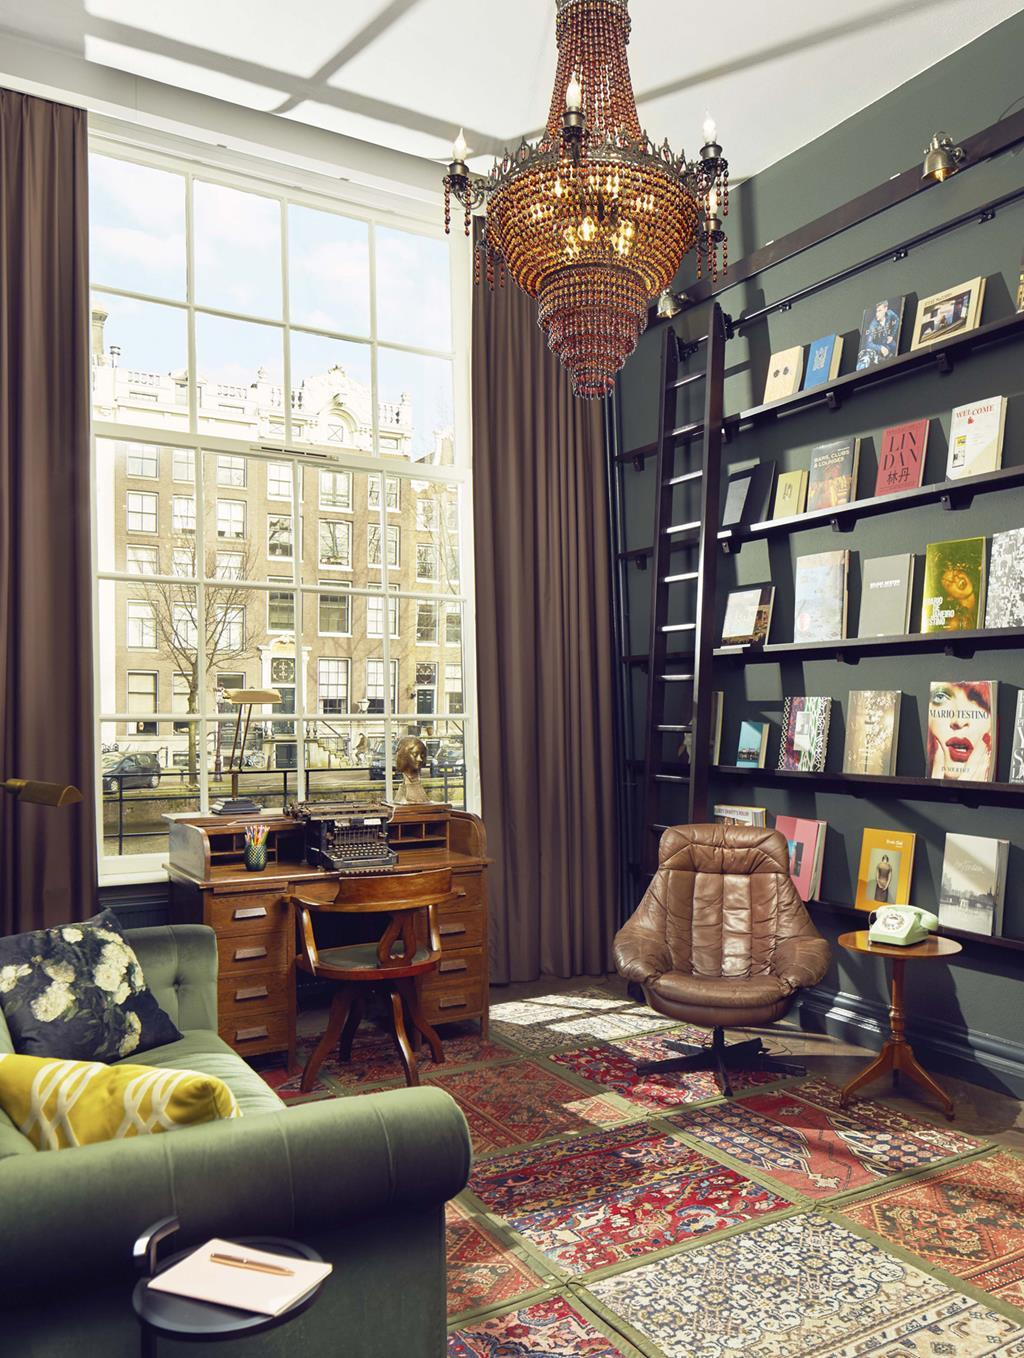 The Book Collector's suite